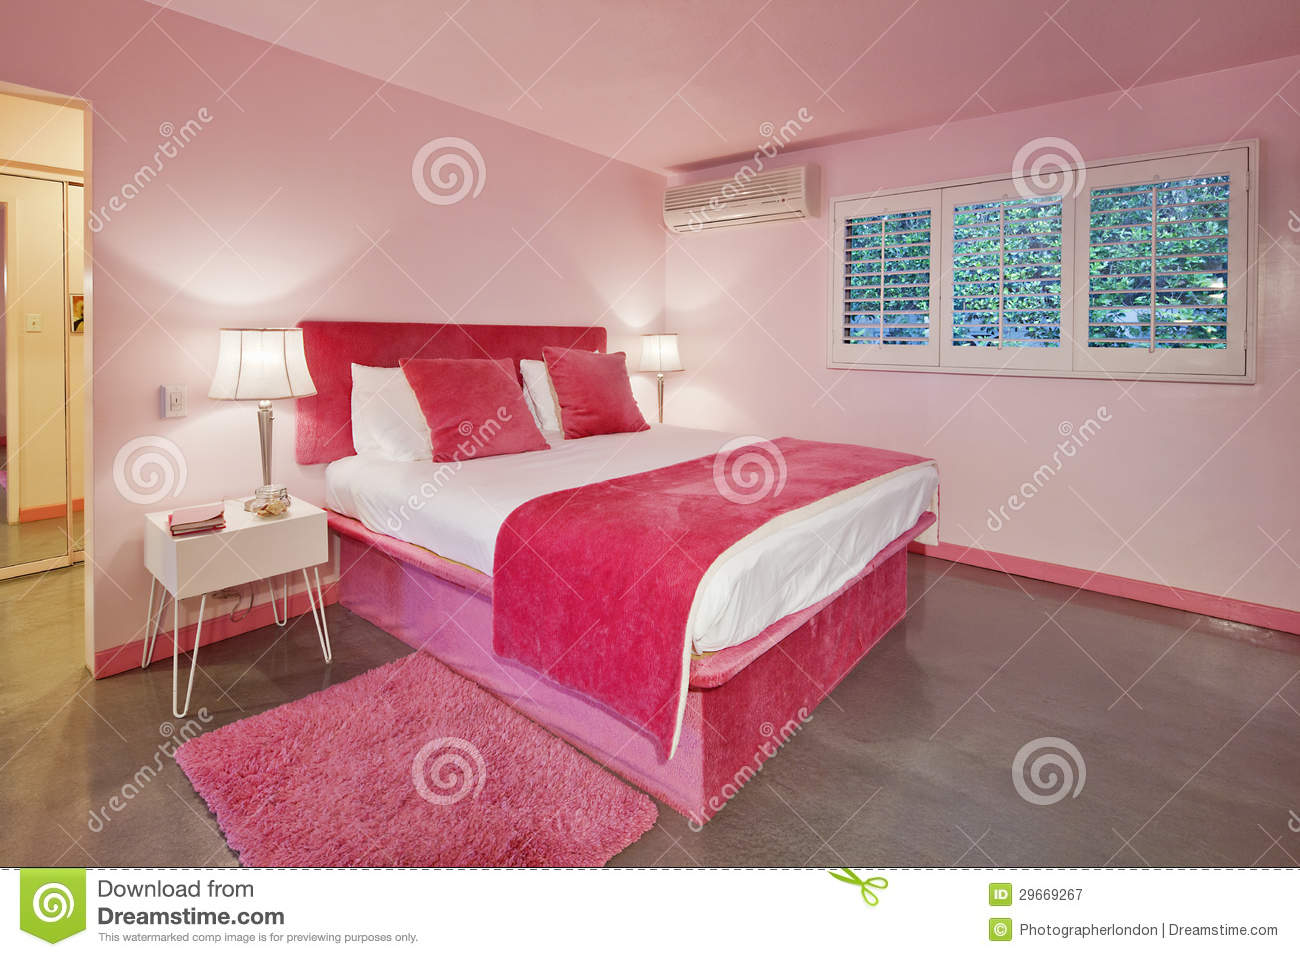 royalty free stock photo download interior design of pink bedroom